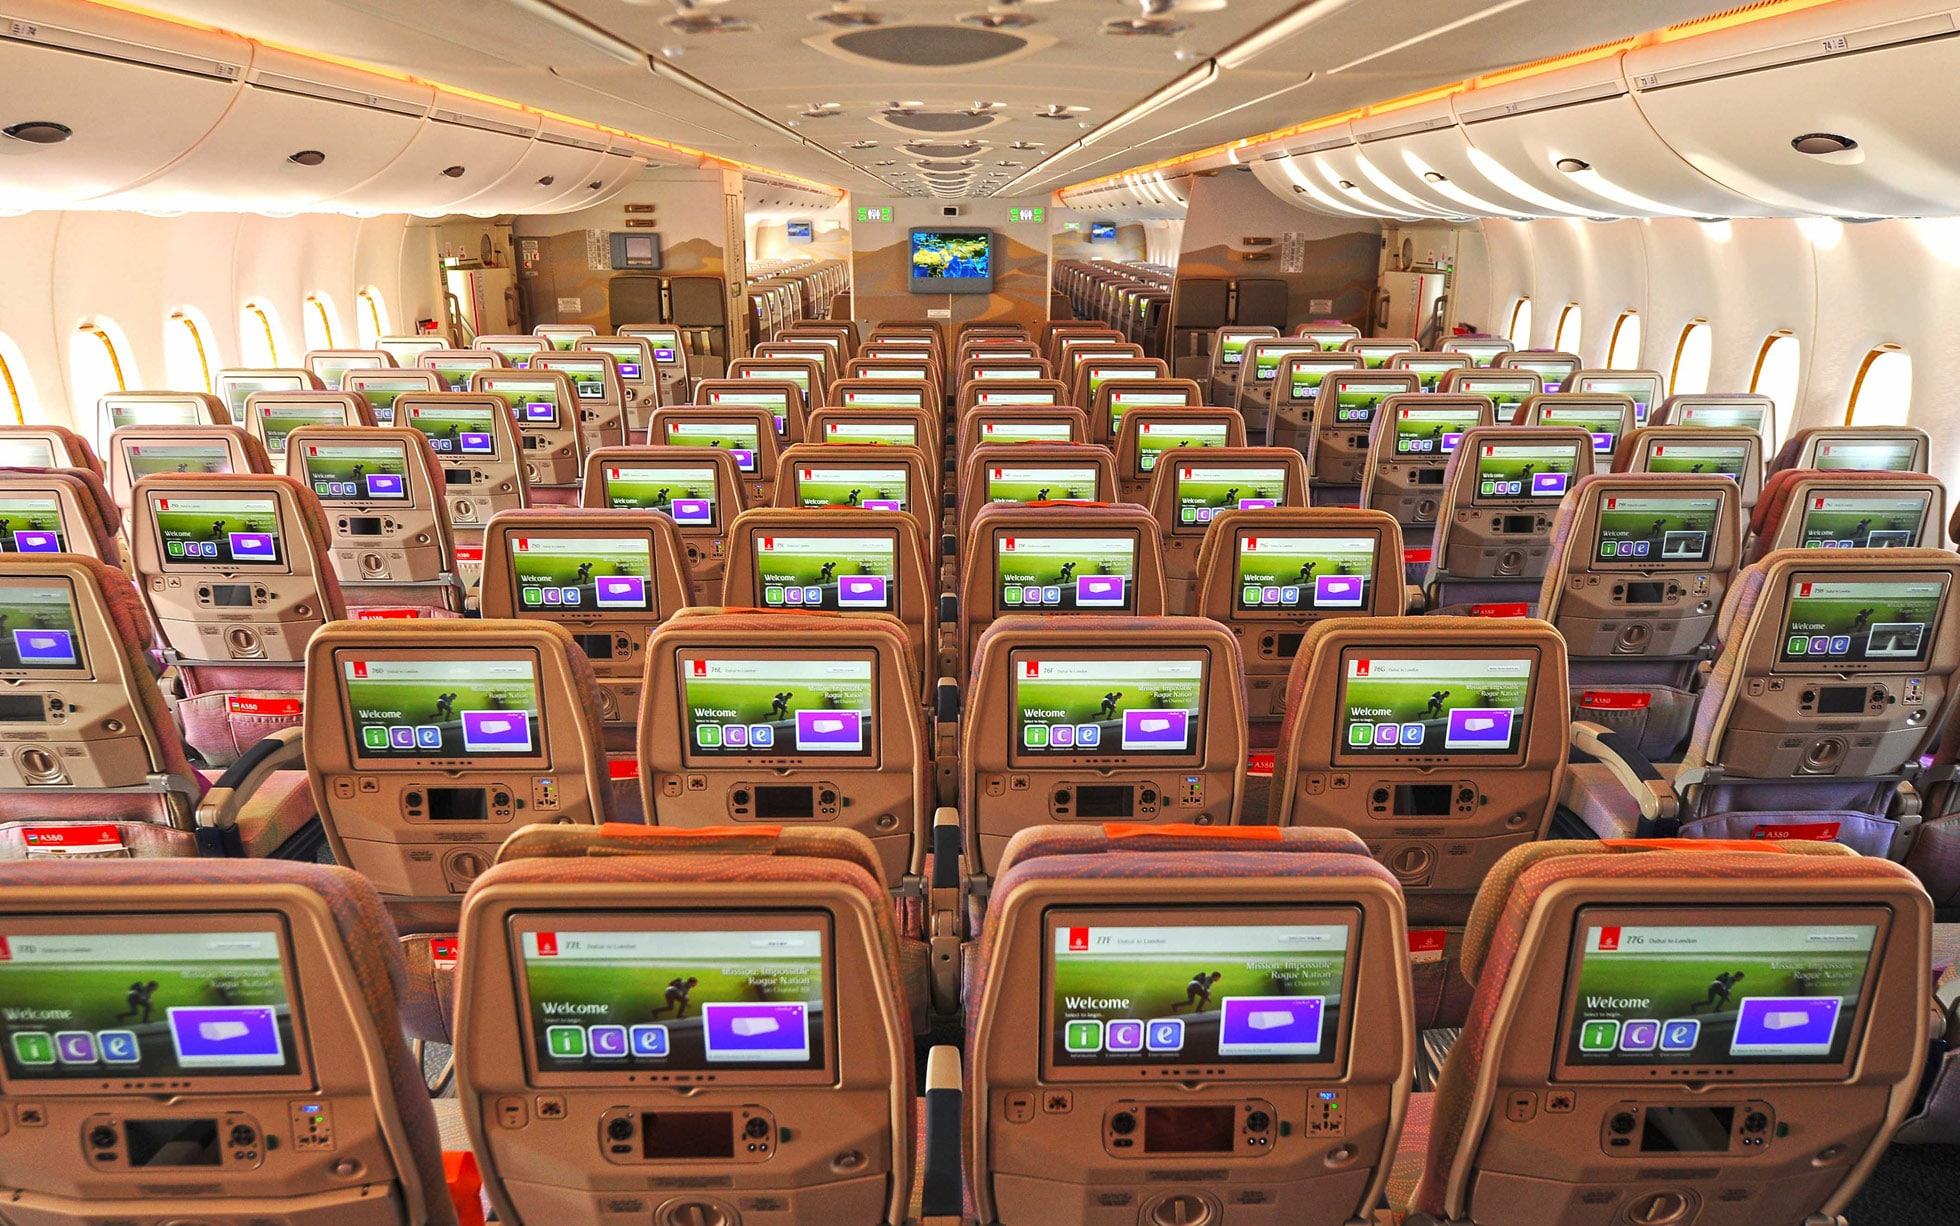 Emirates Plane Removes First Class To Fit In The Most